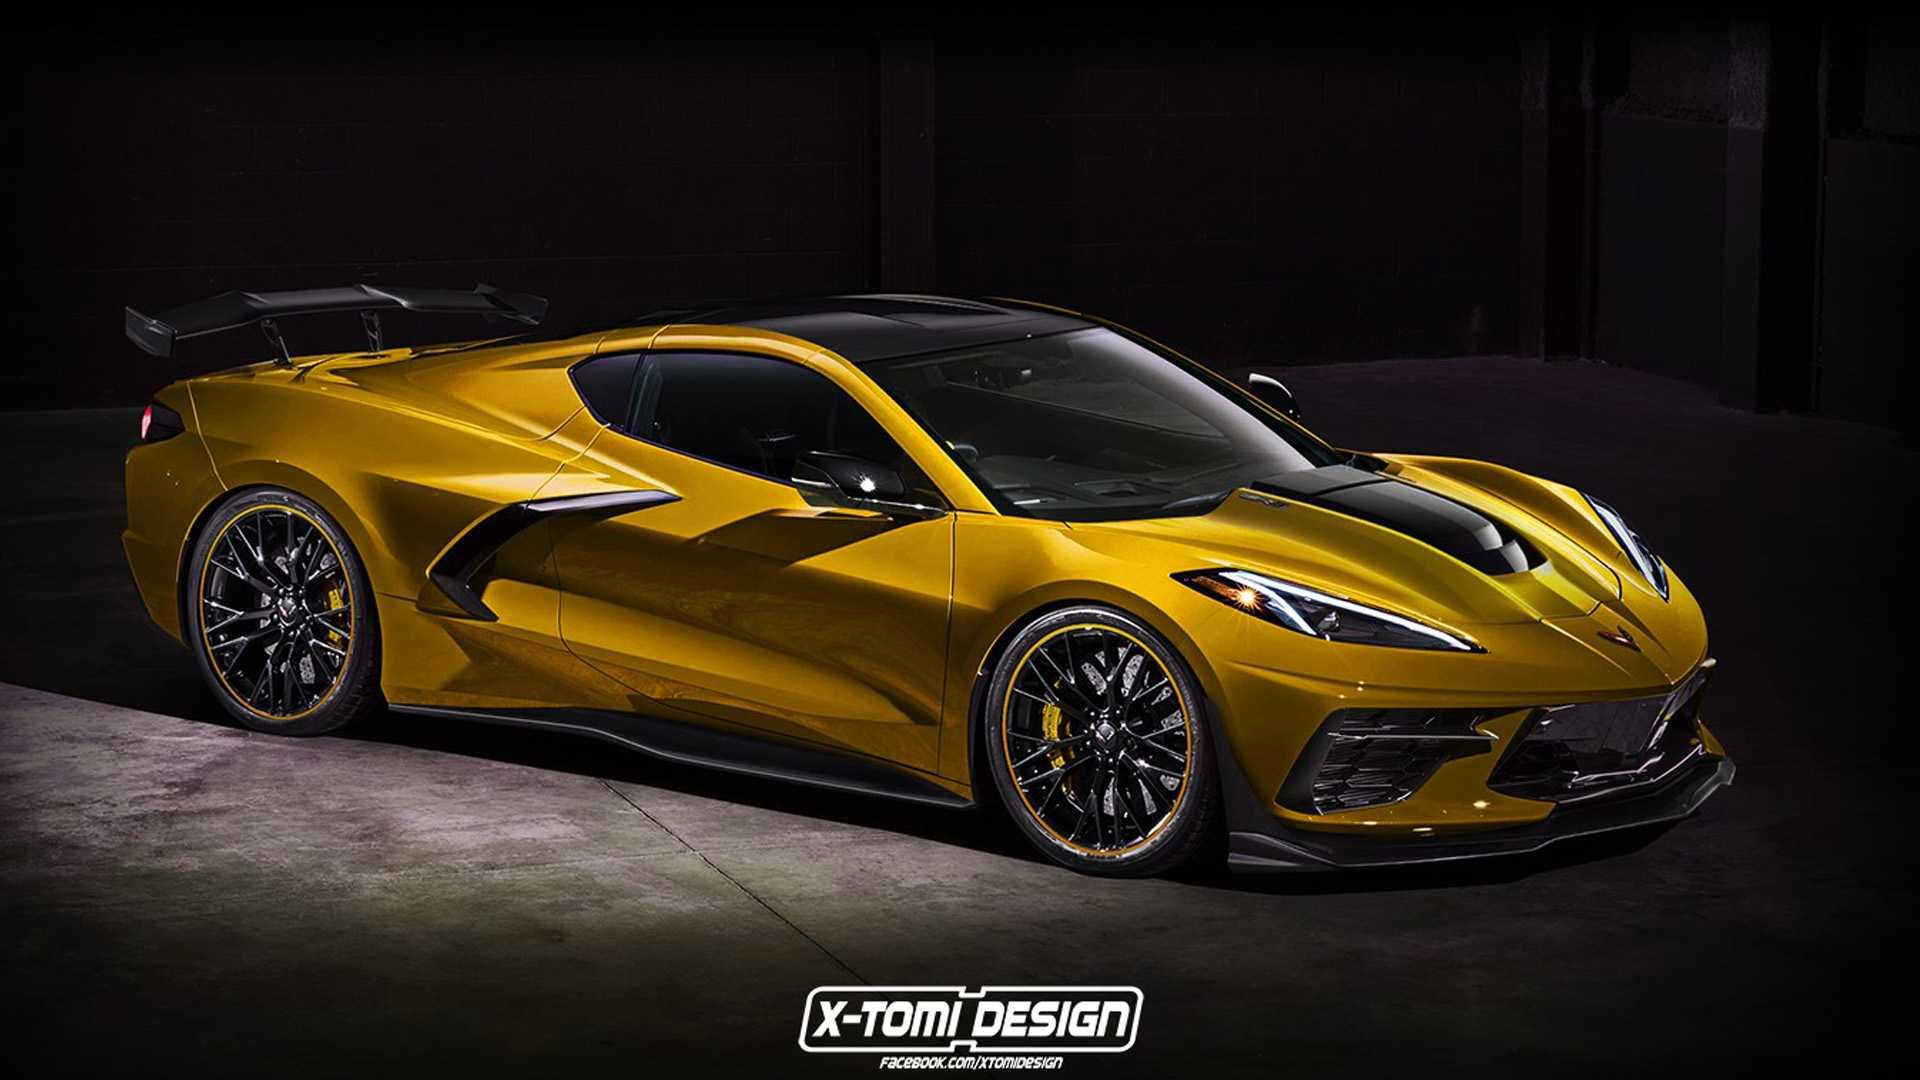 New Corvette Stingray >> 2020 Corvette Stingray Already Gets Zr1 Treatment In New